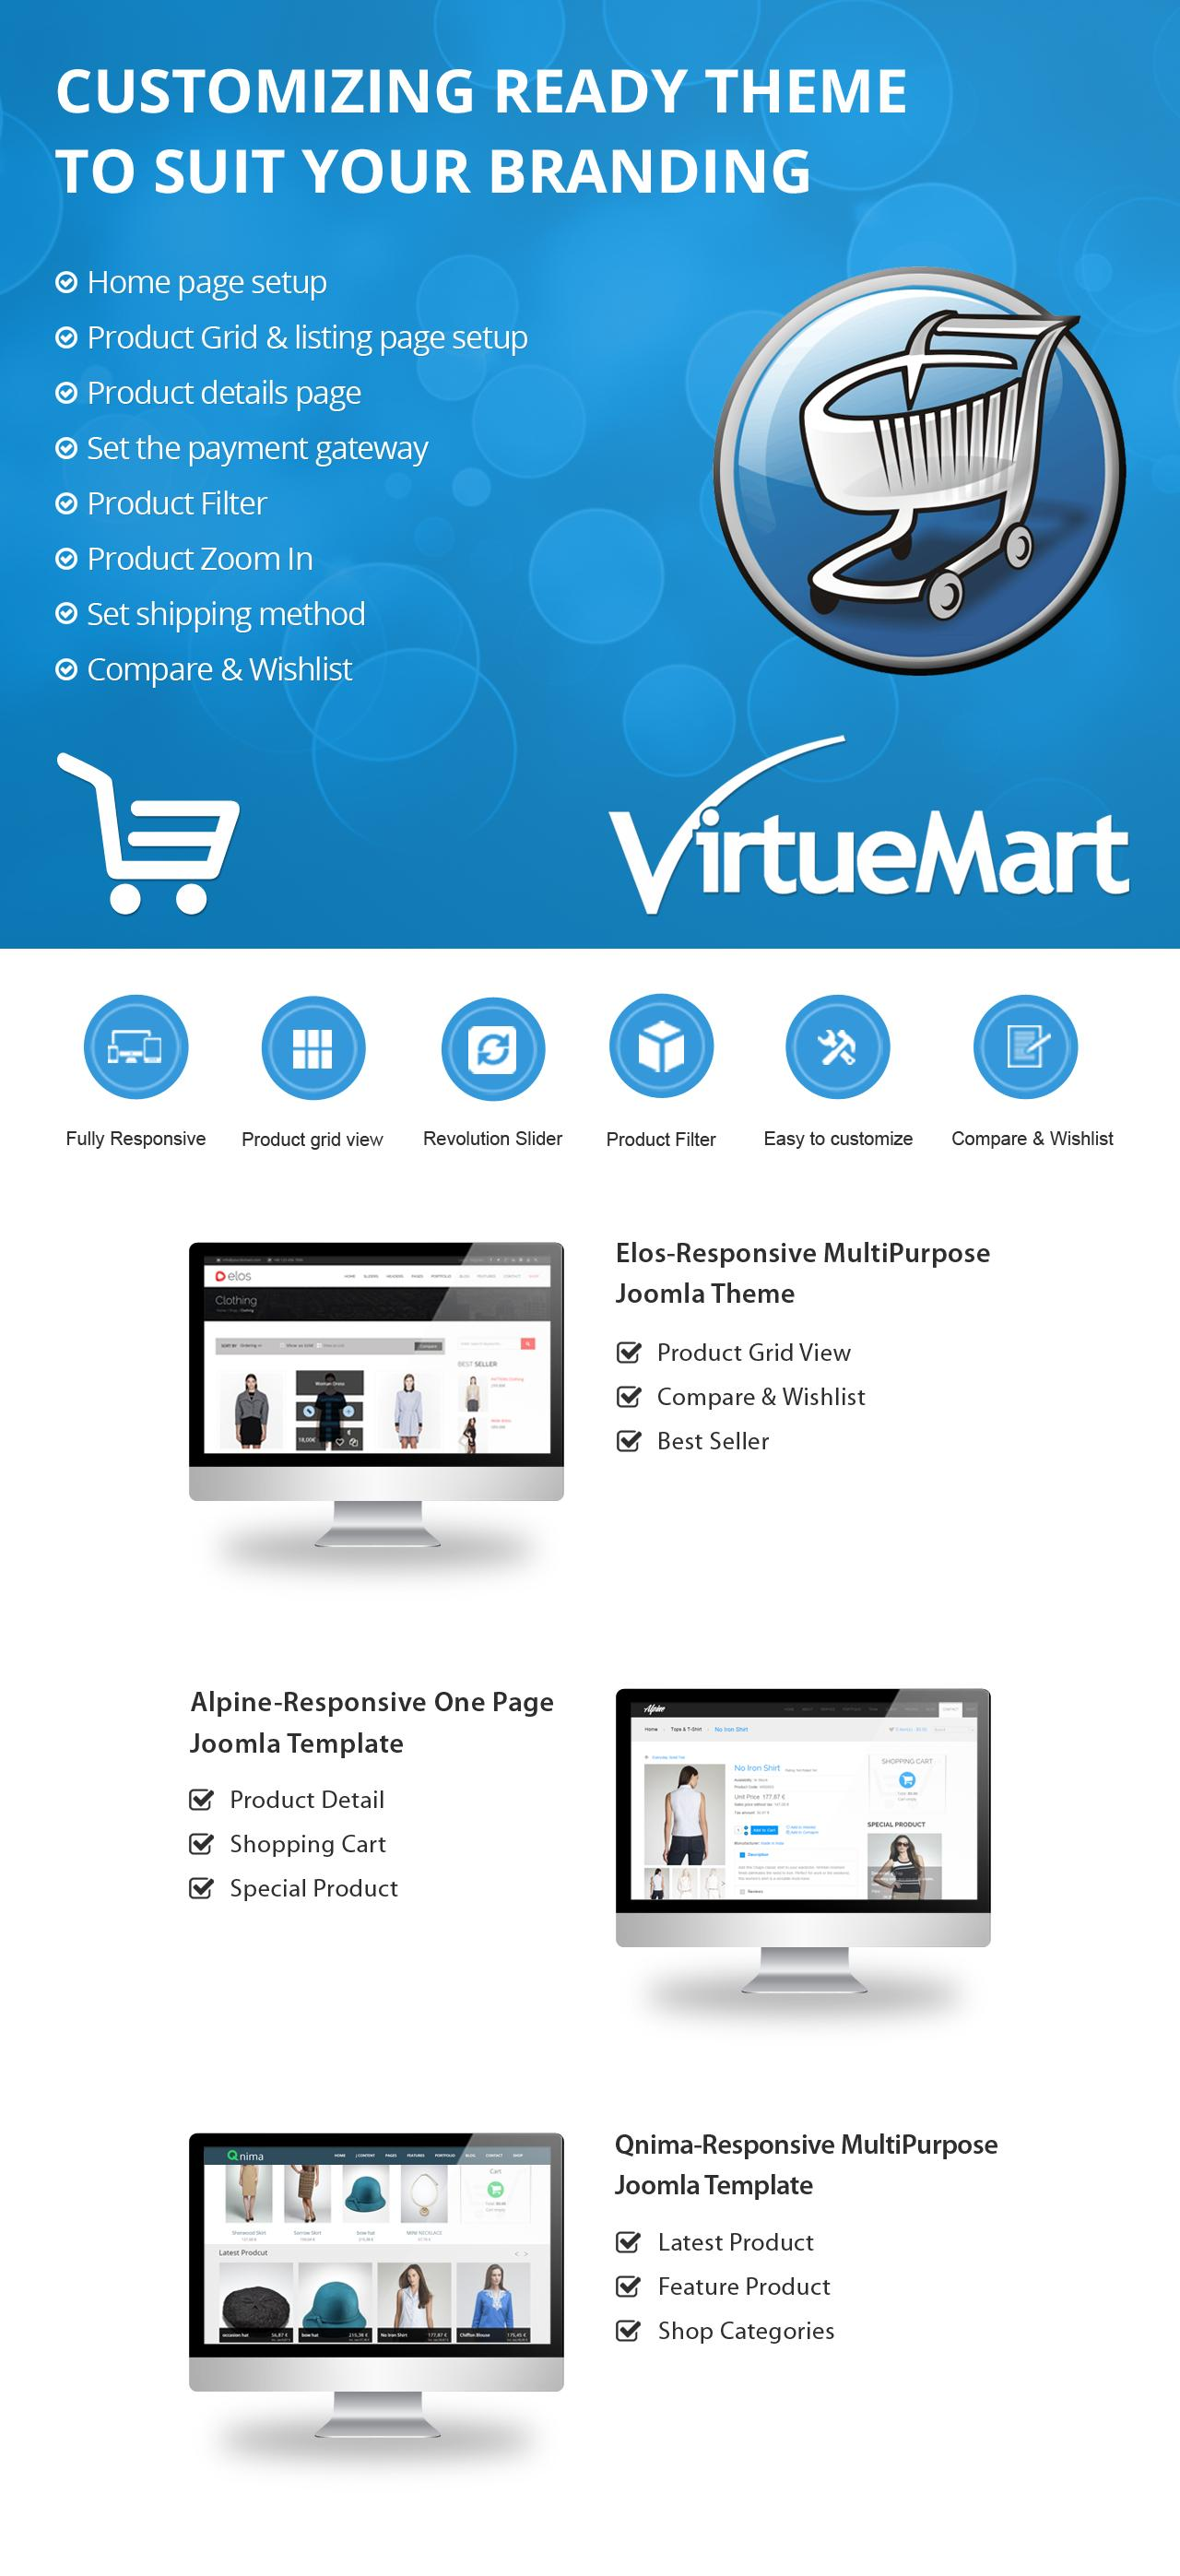 Joomla Ecommerce - Virtuemart Site Setup by dasinfomedia - 75378